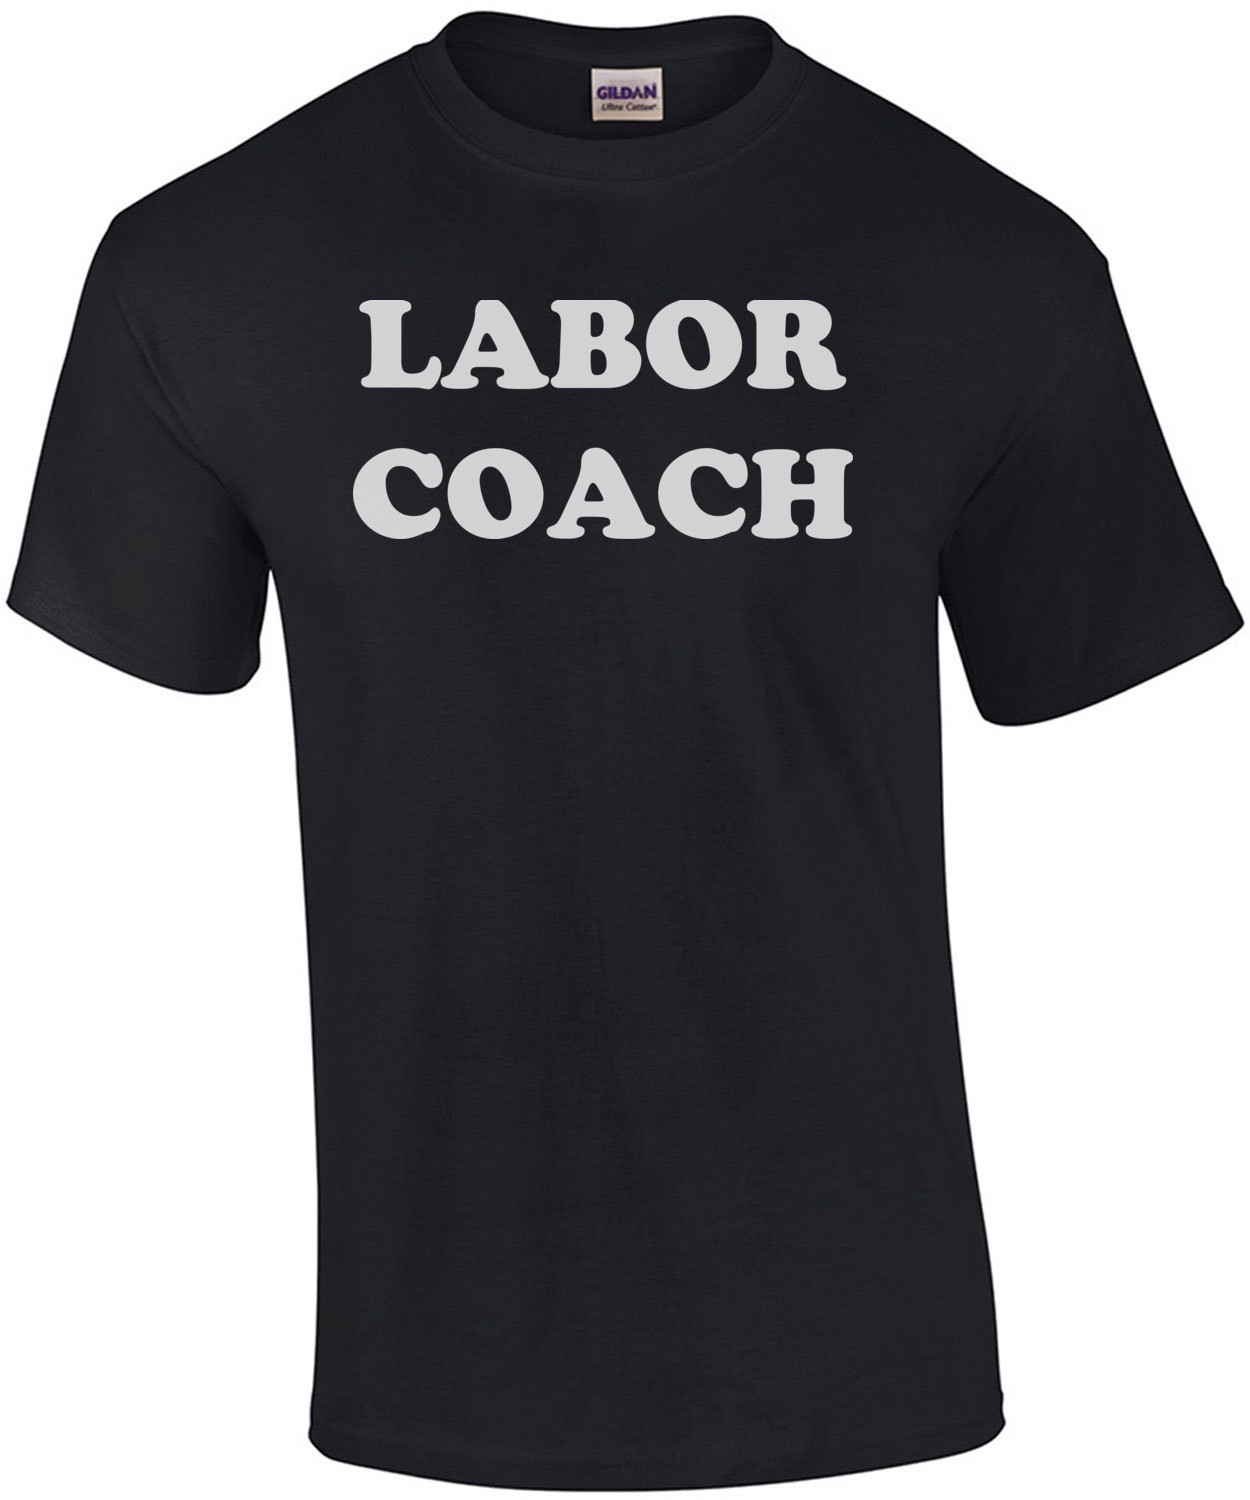 Labor Coach - Funny Pregnancy Labor T-Shirt